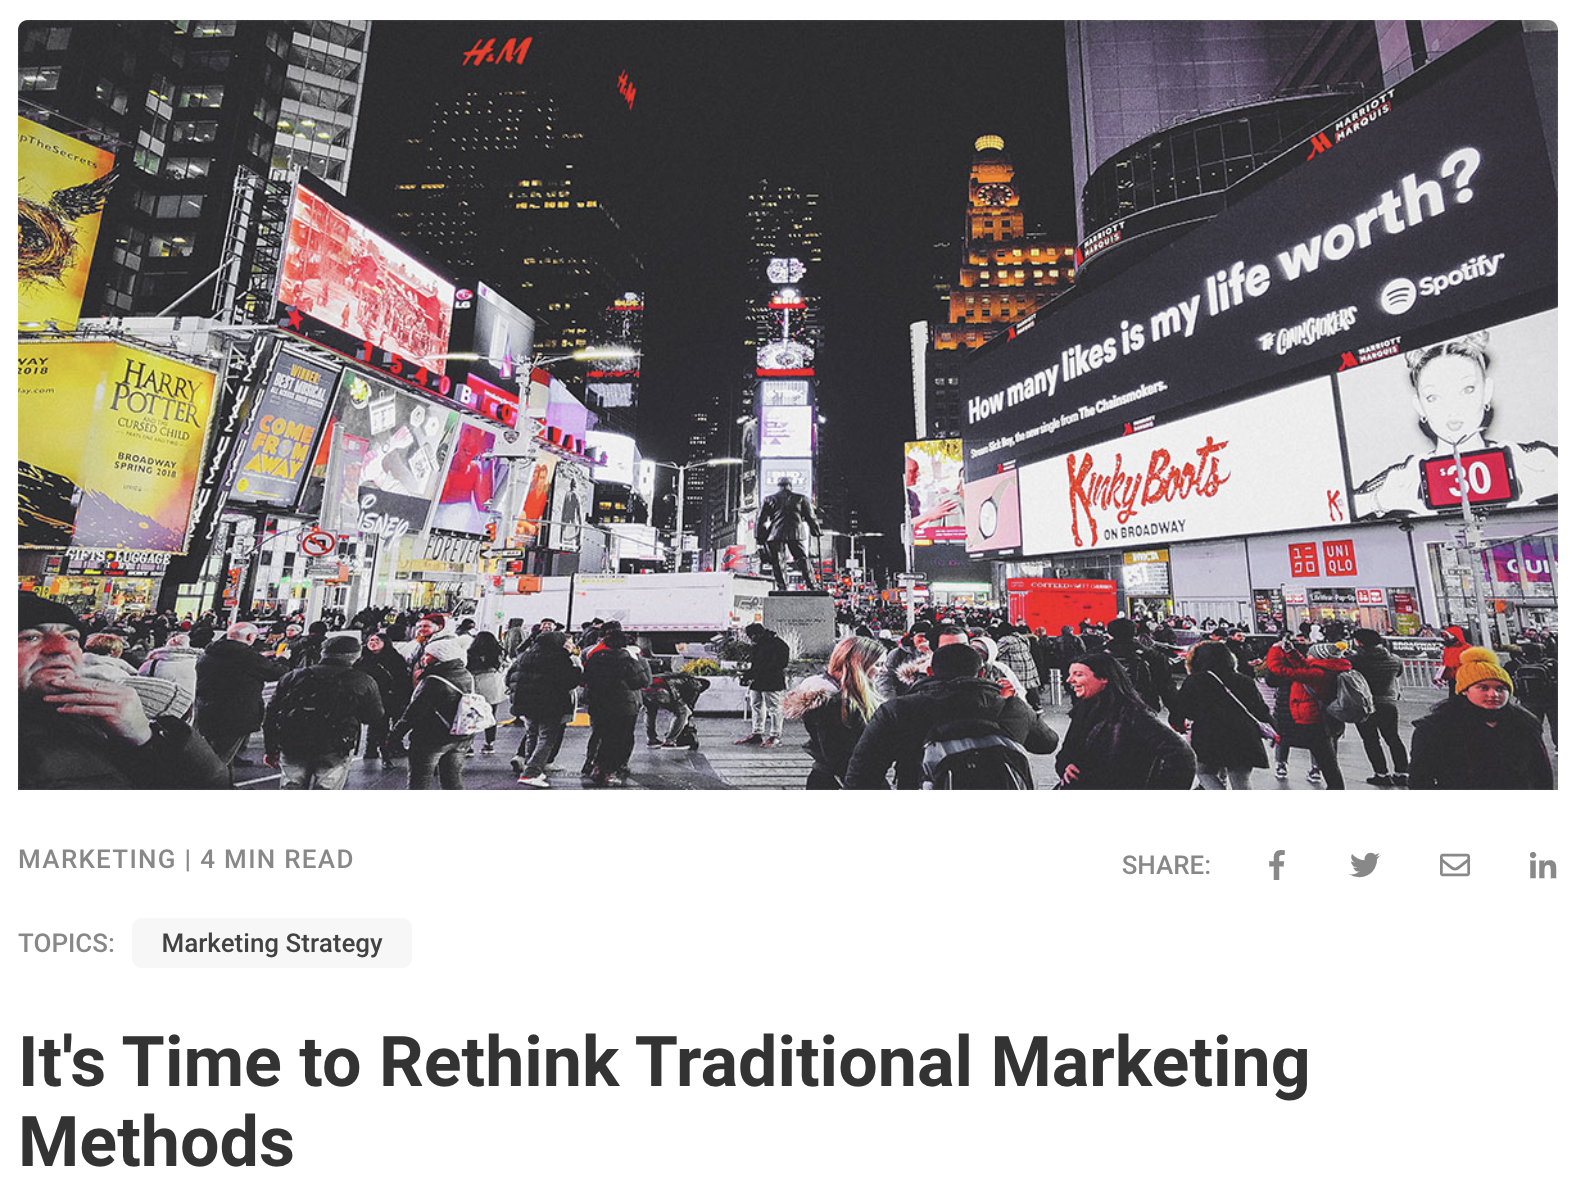 Rethink traditional